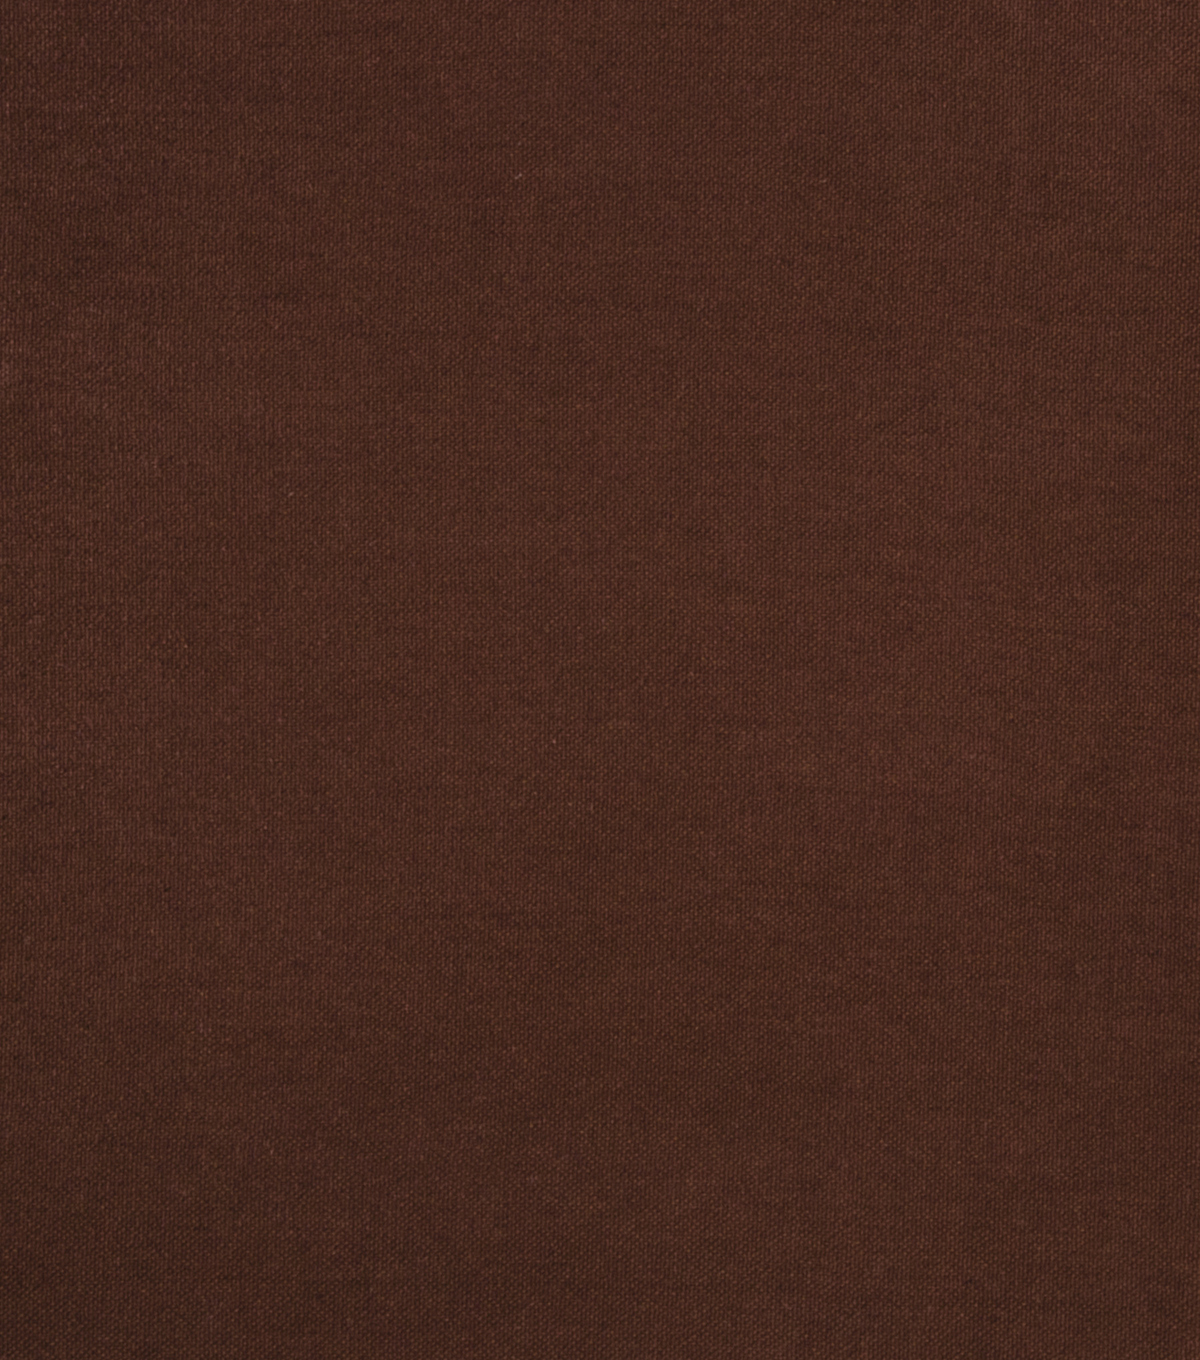 Home Decor 8\u0022x8\u0022 Fabric Swatch-Jaclyn Smith Cobblestone Boucle Cocoa